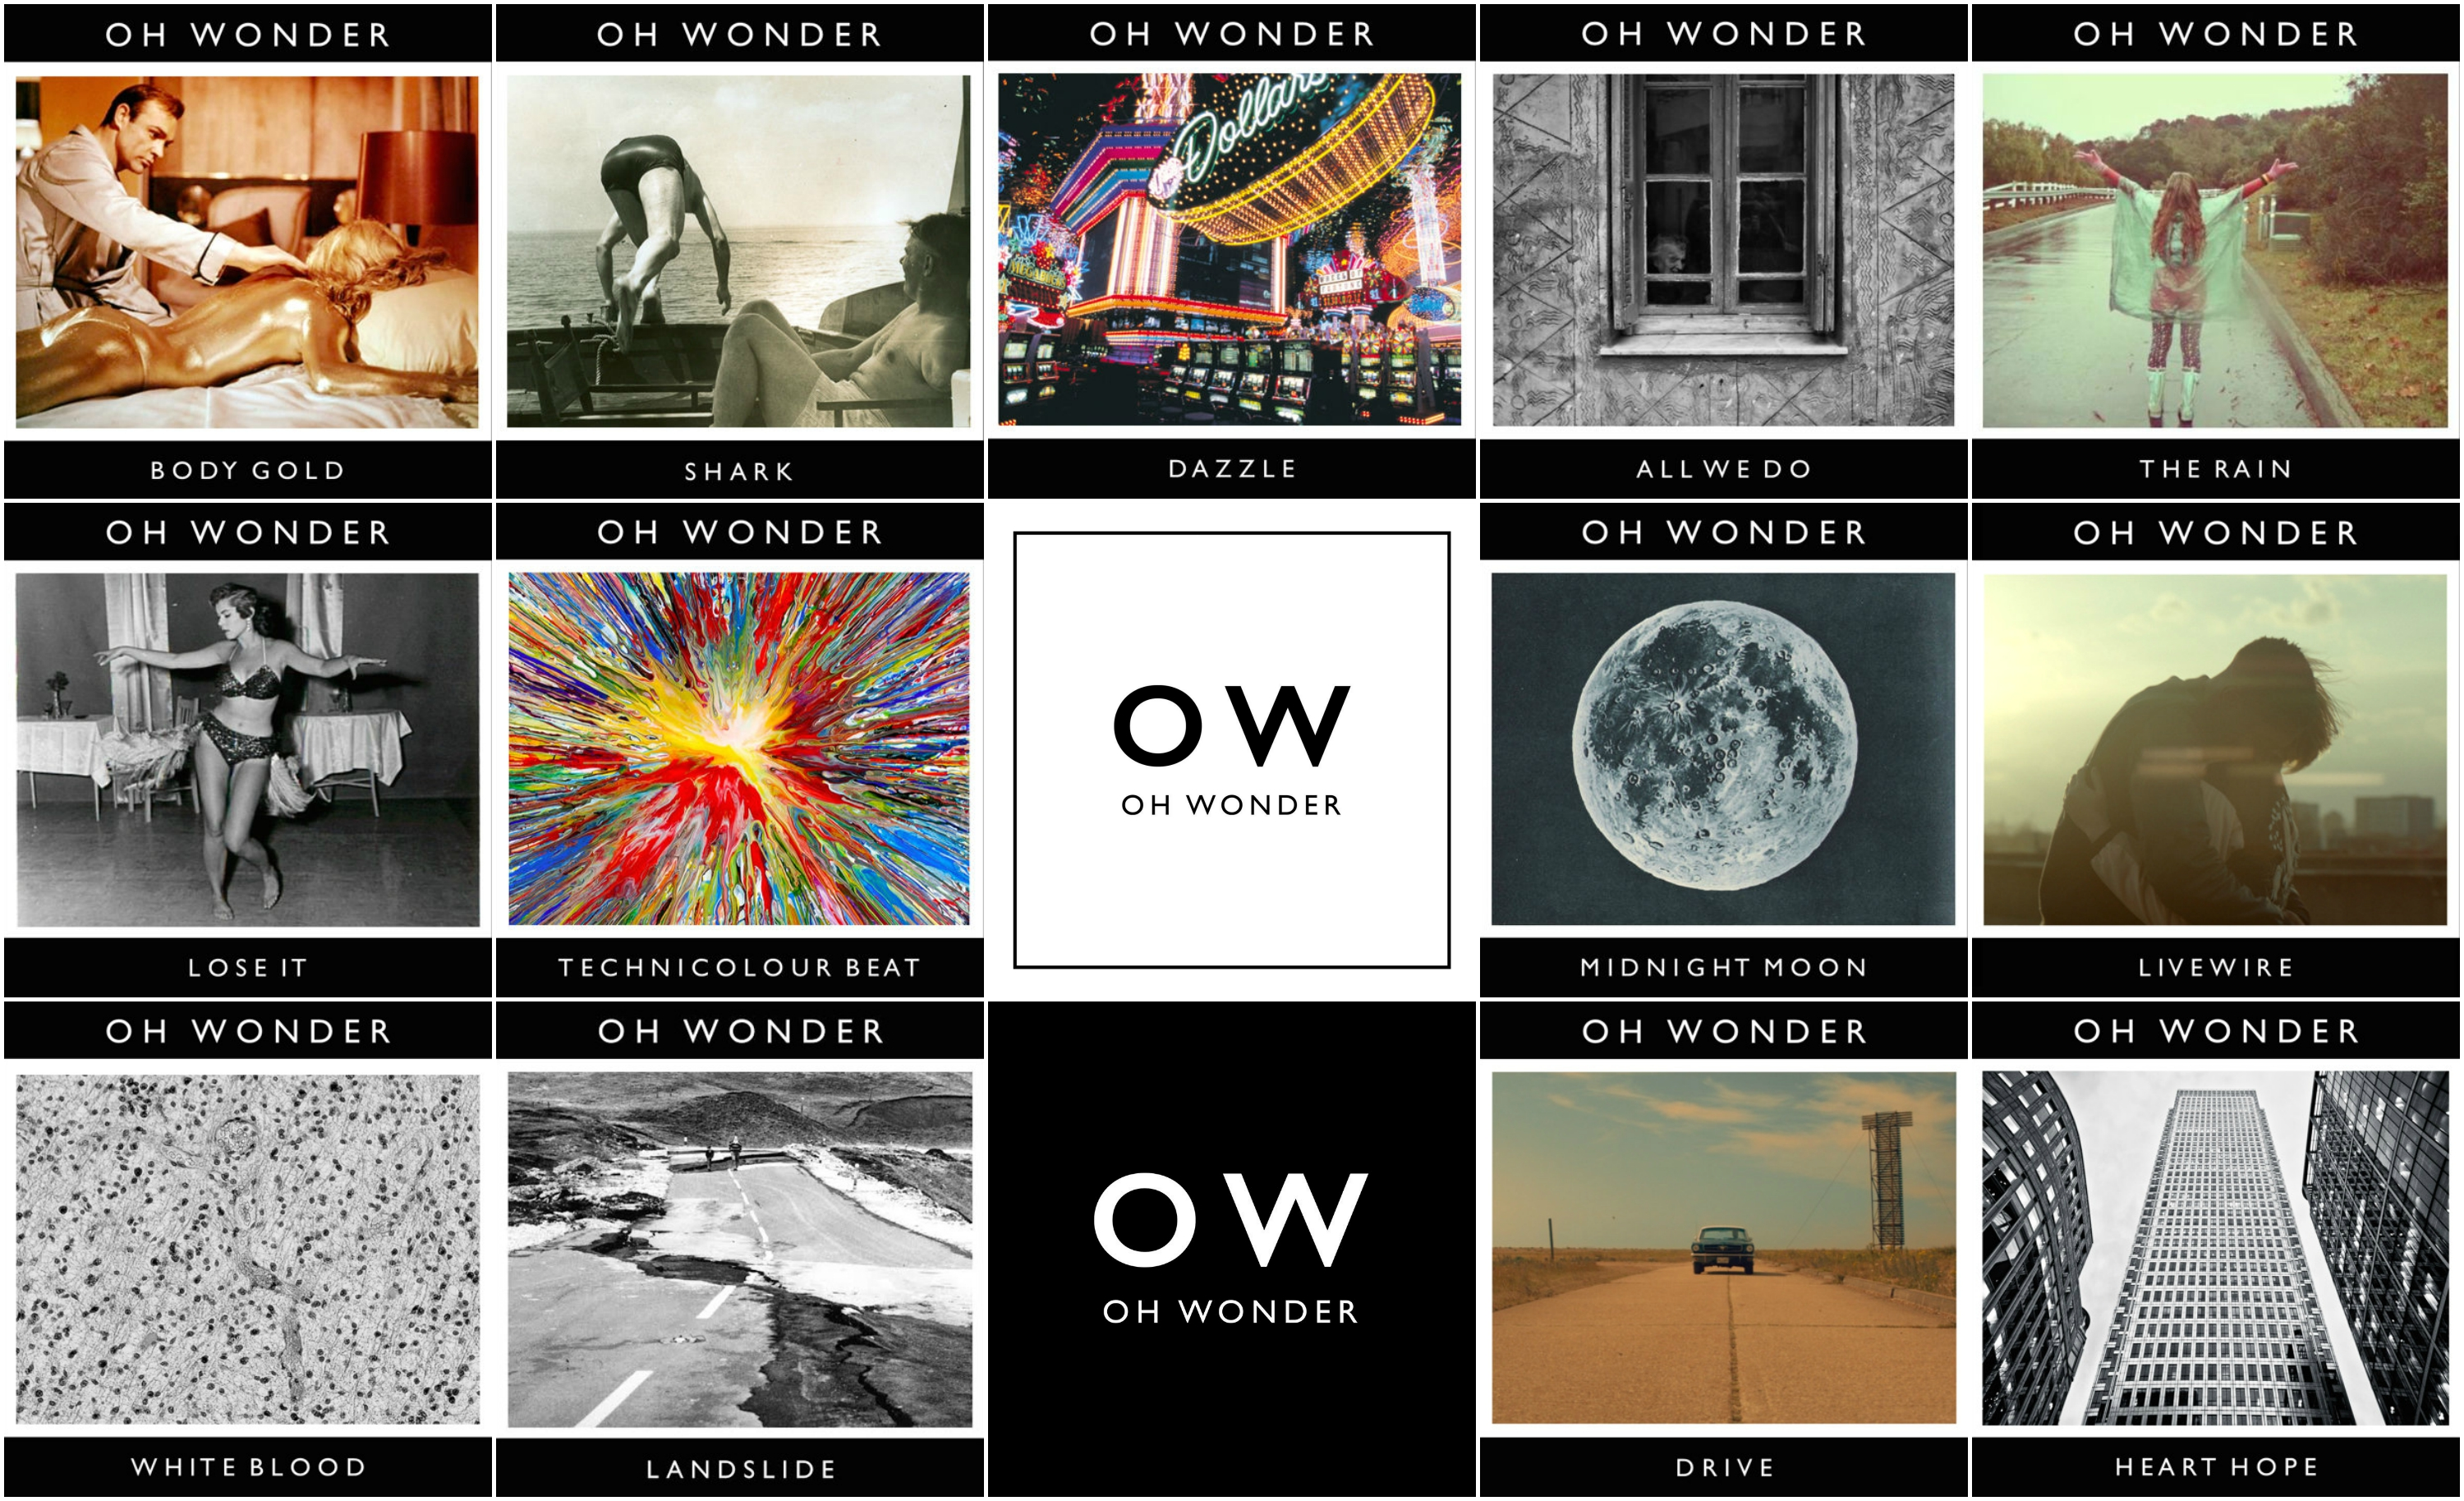 Lyrics Melody And Meaning A Conversation With Oh Wonder